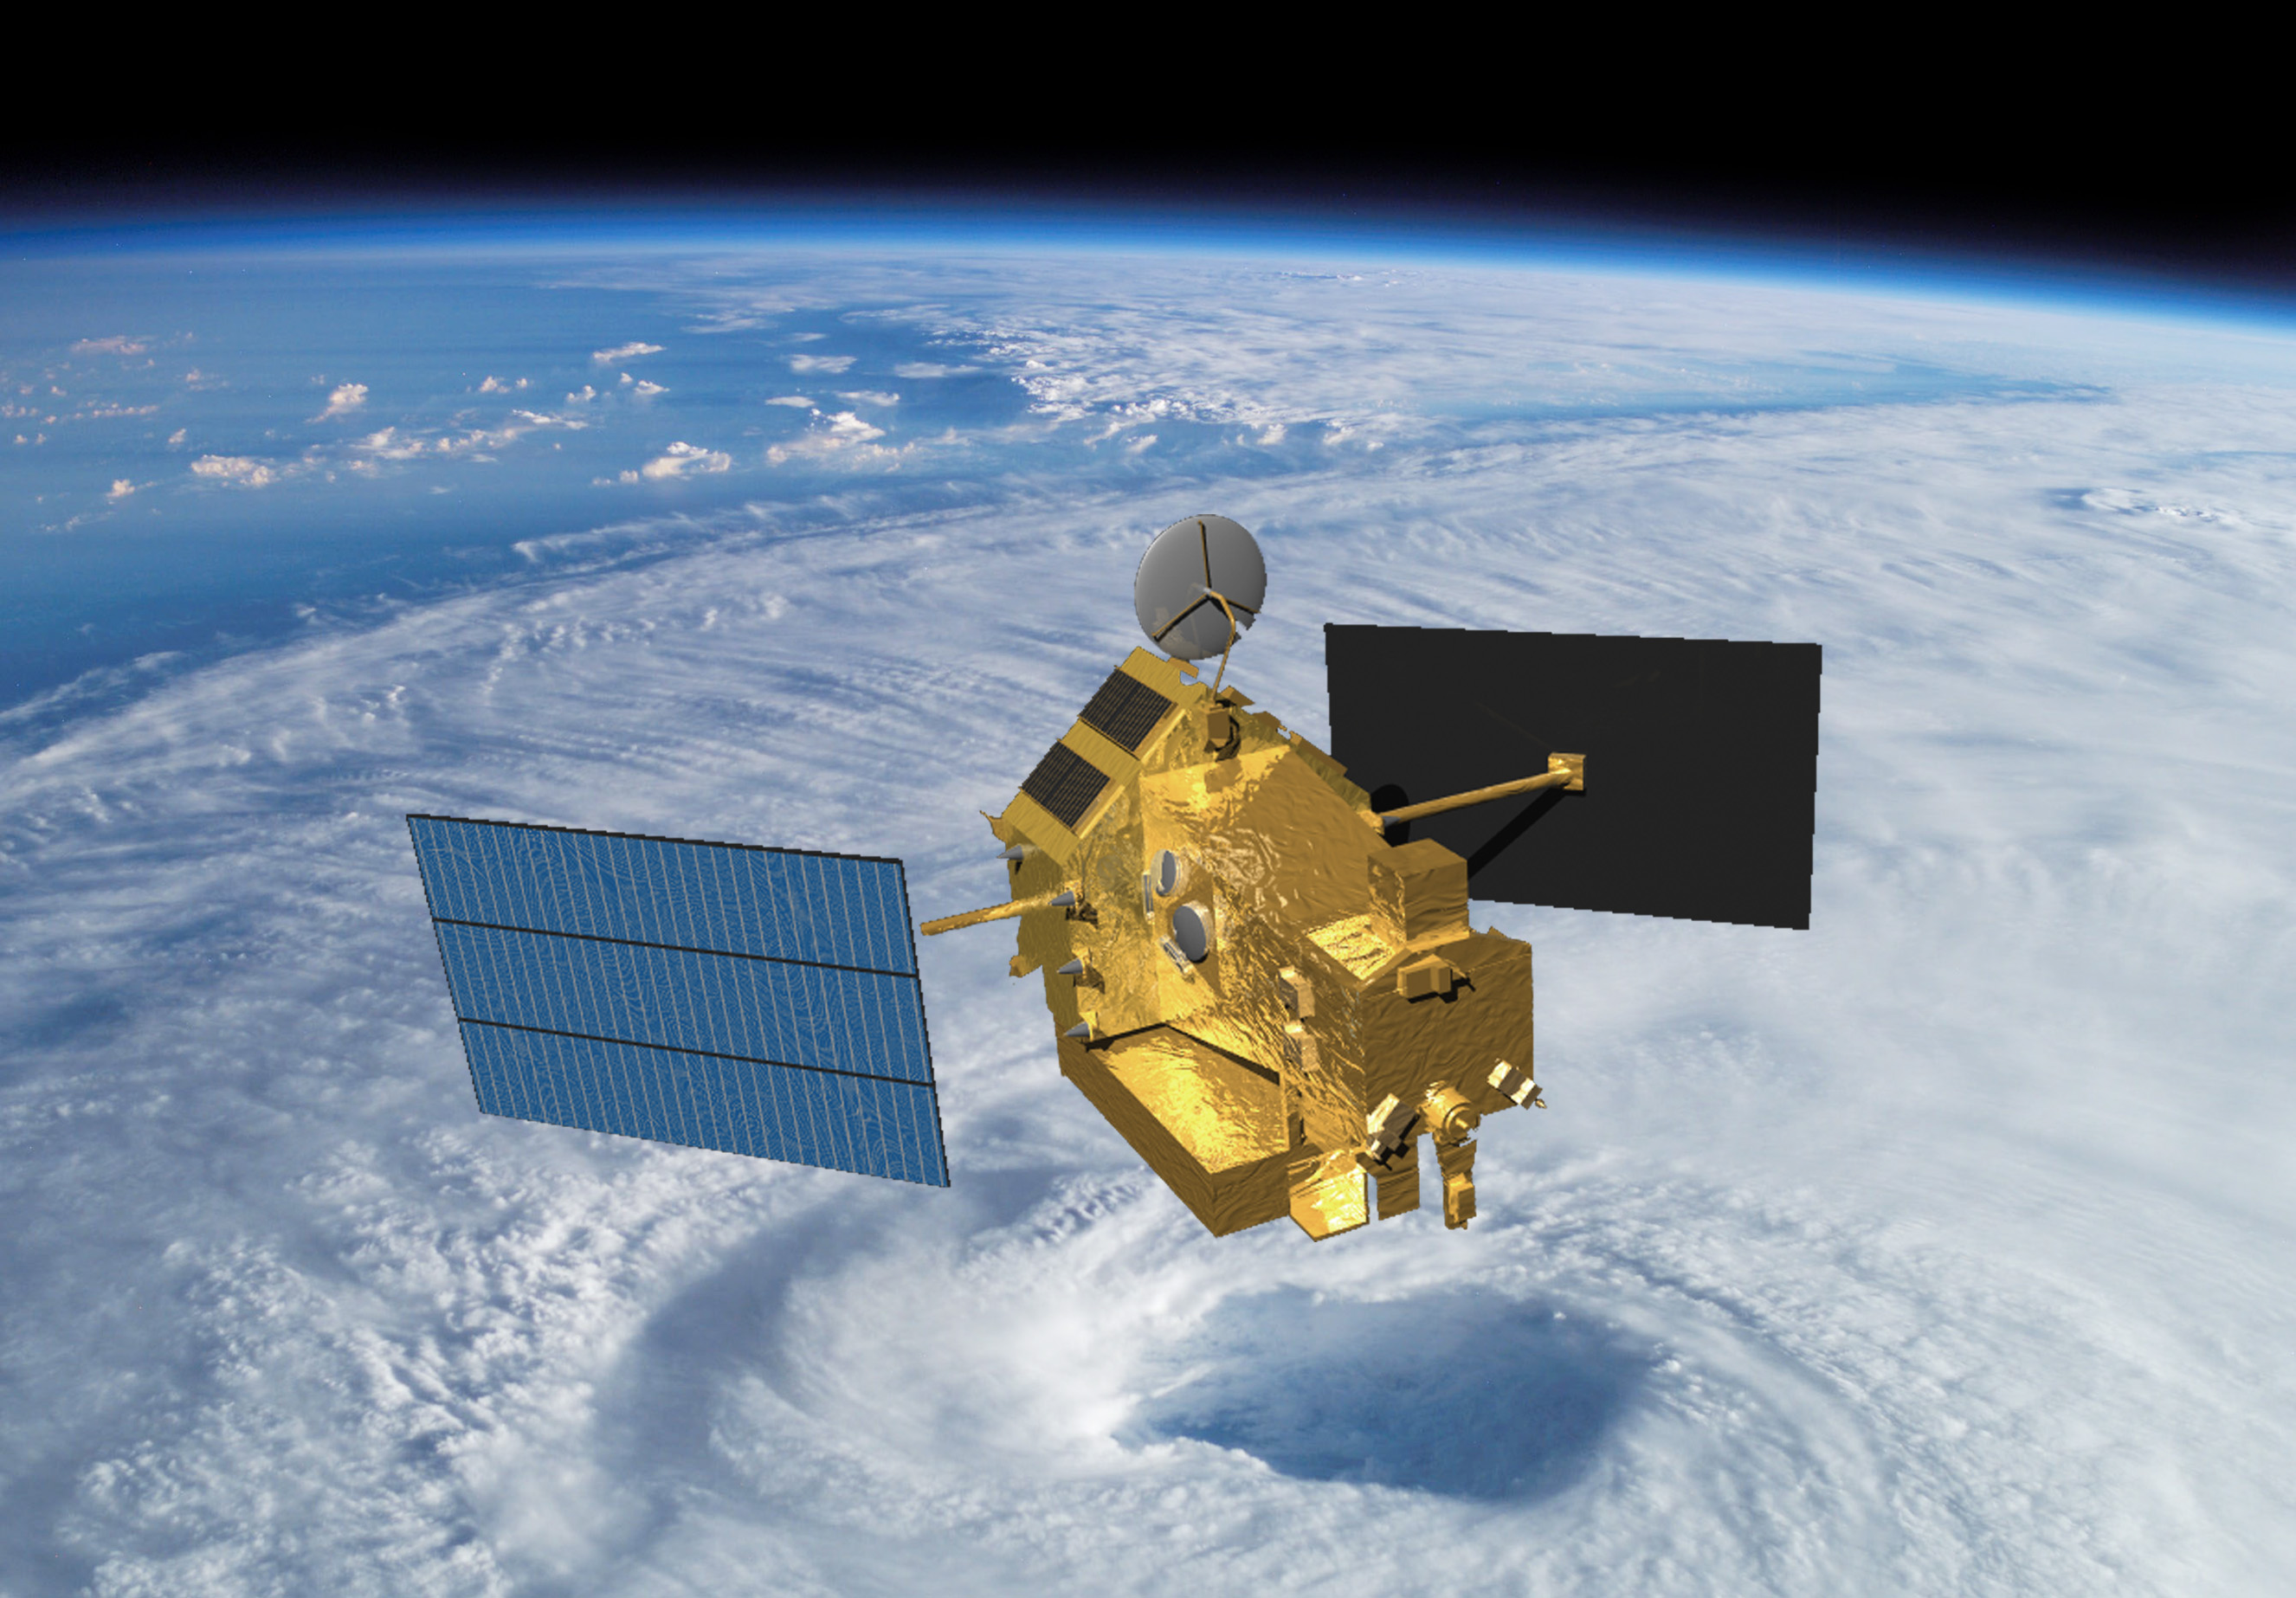 TRMM in space over a hurricane